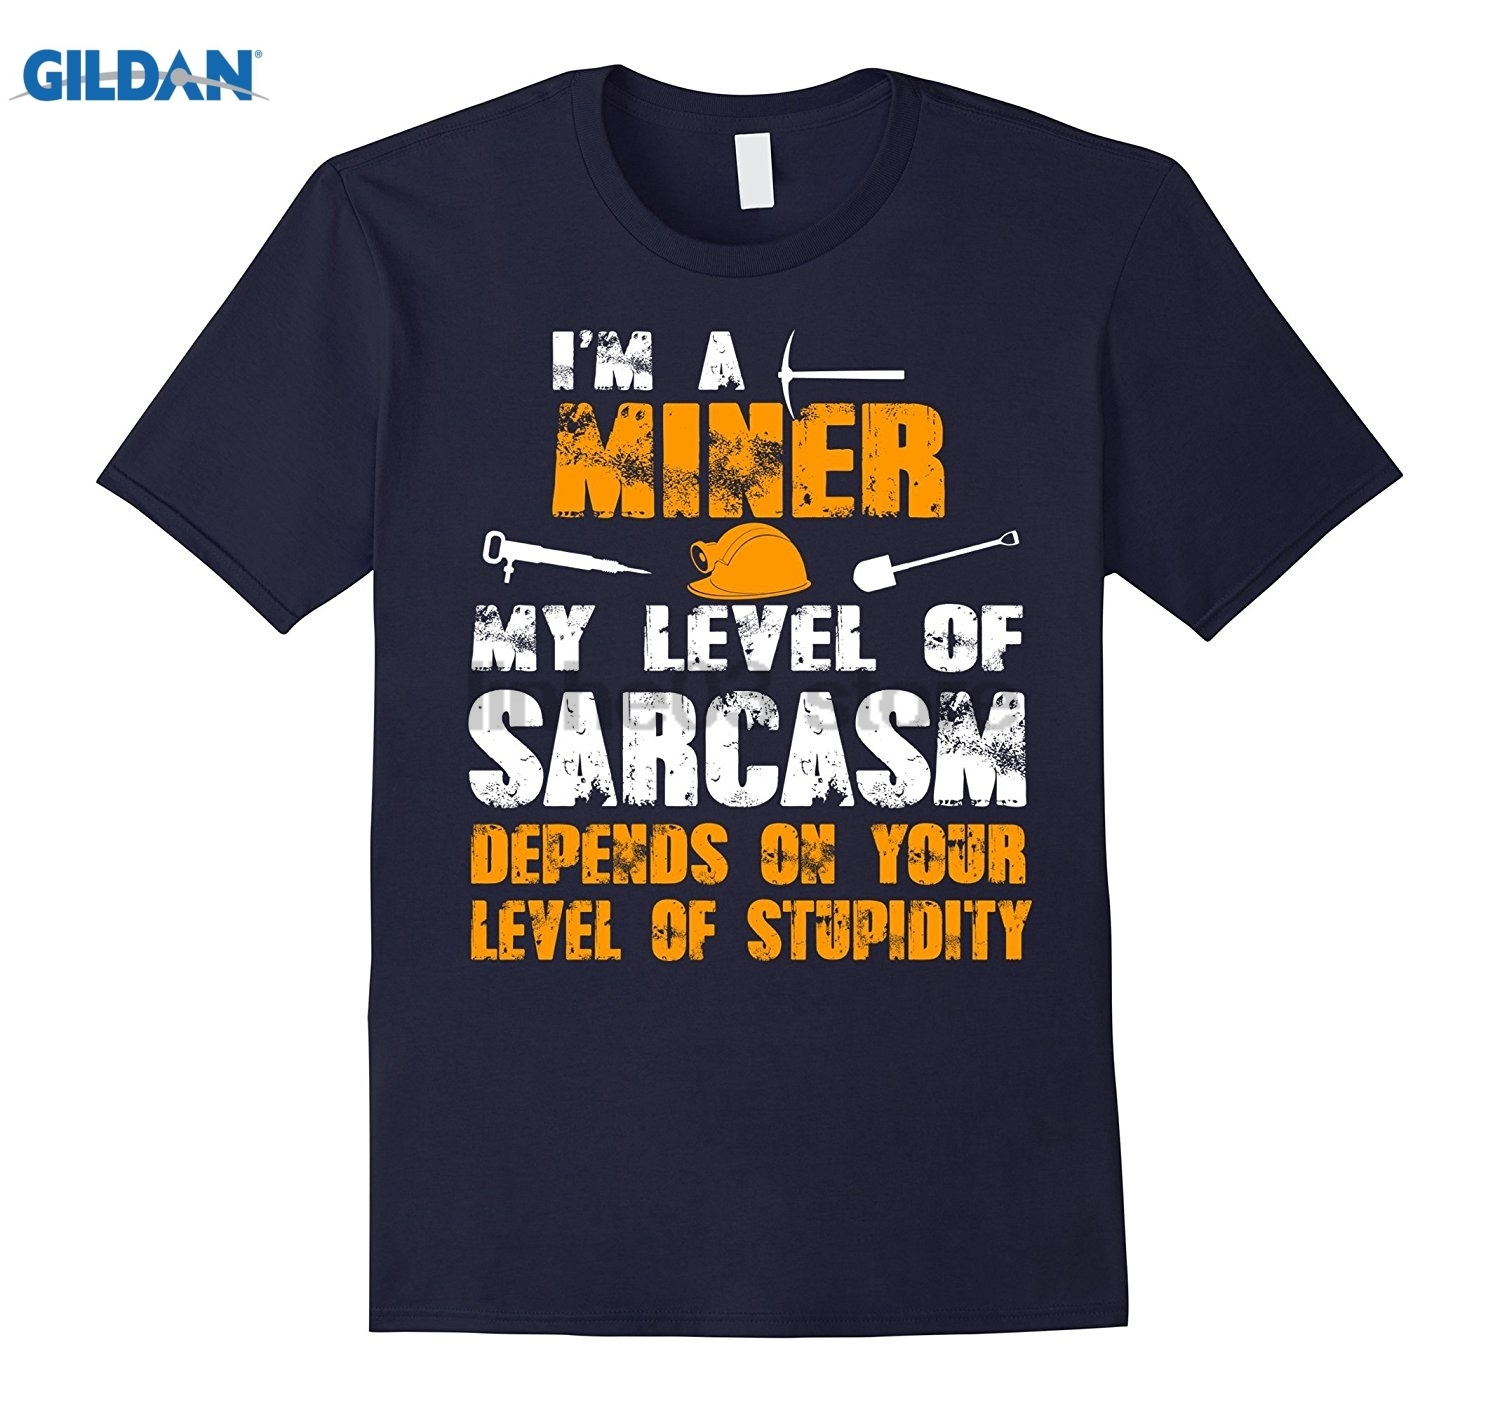 GILDAN Miner Sarcasm Depends On Your Stupidity sunglasses women T-shirt